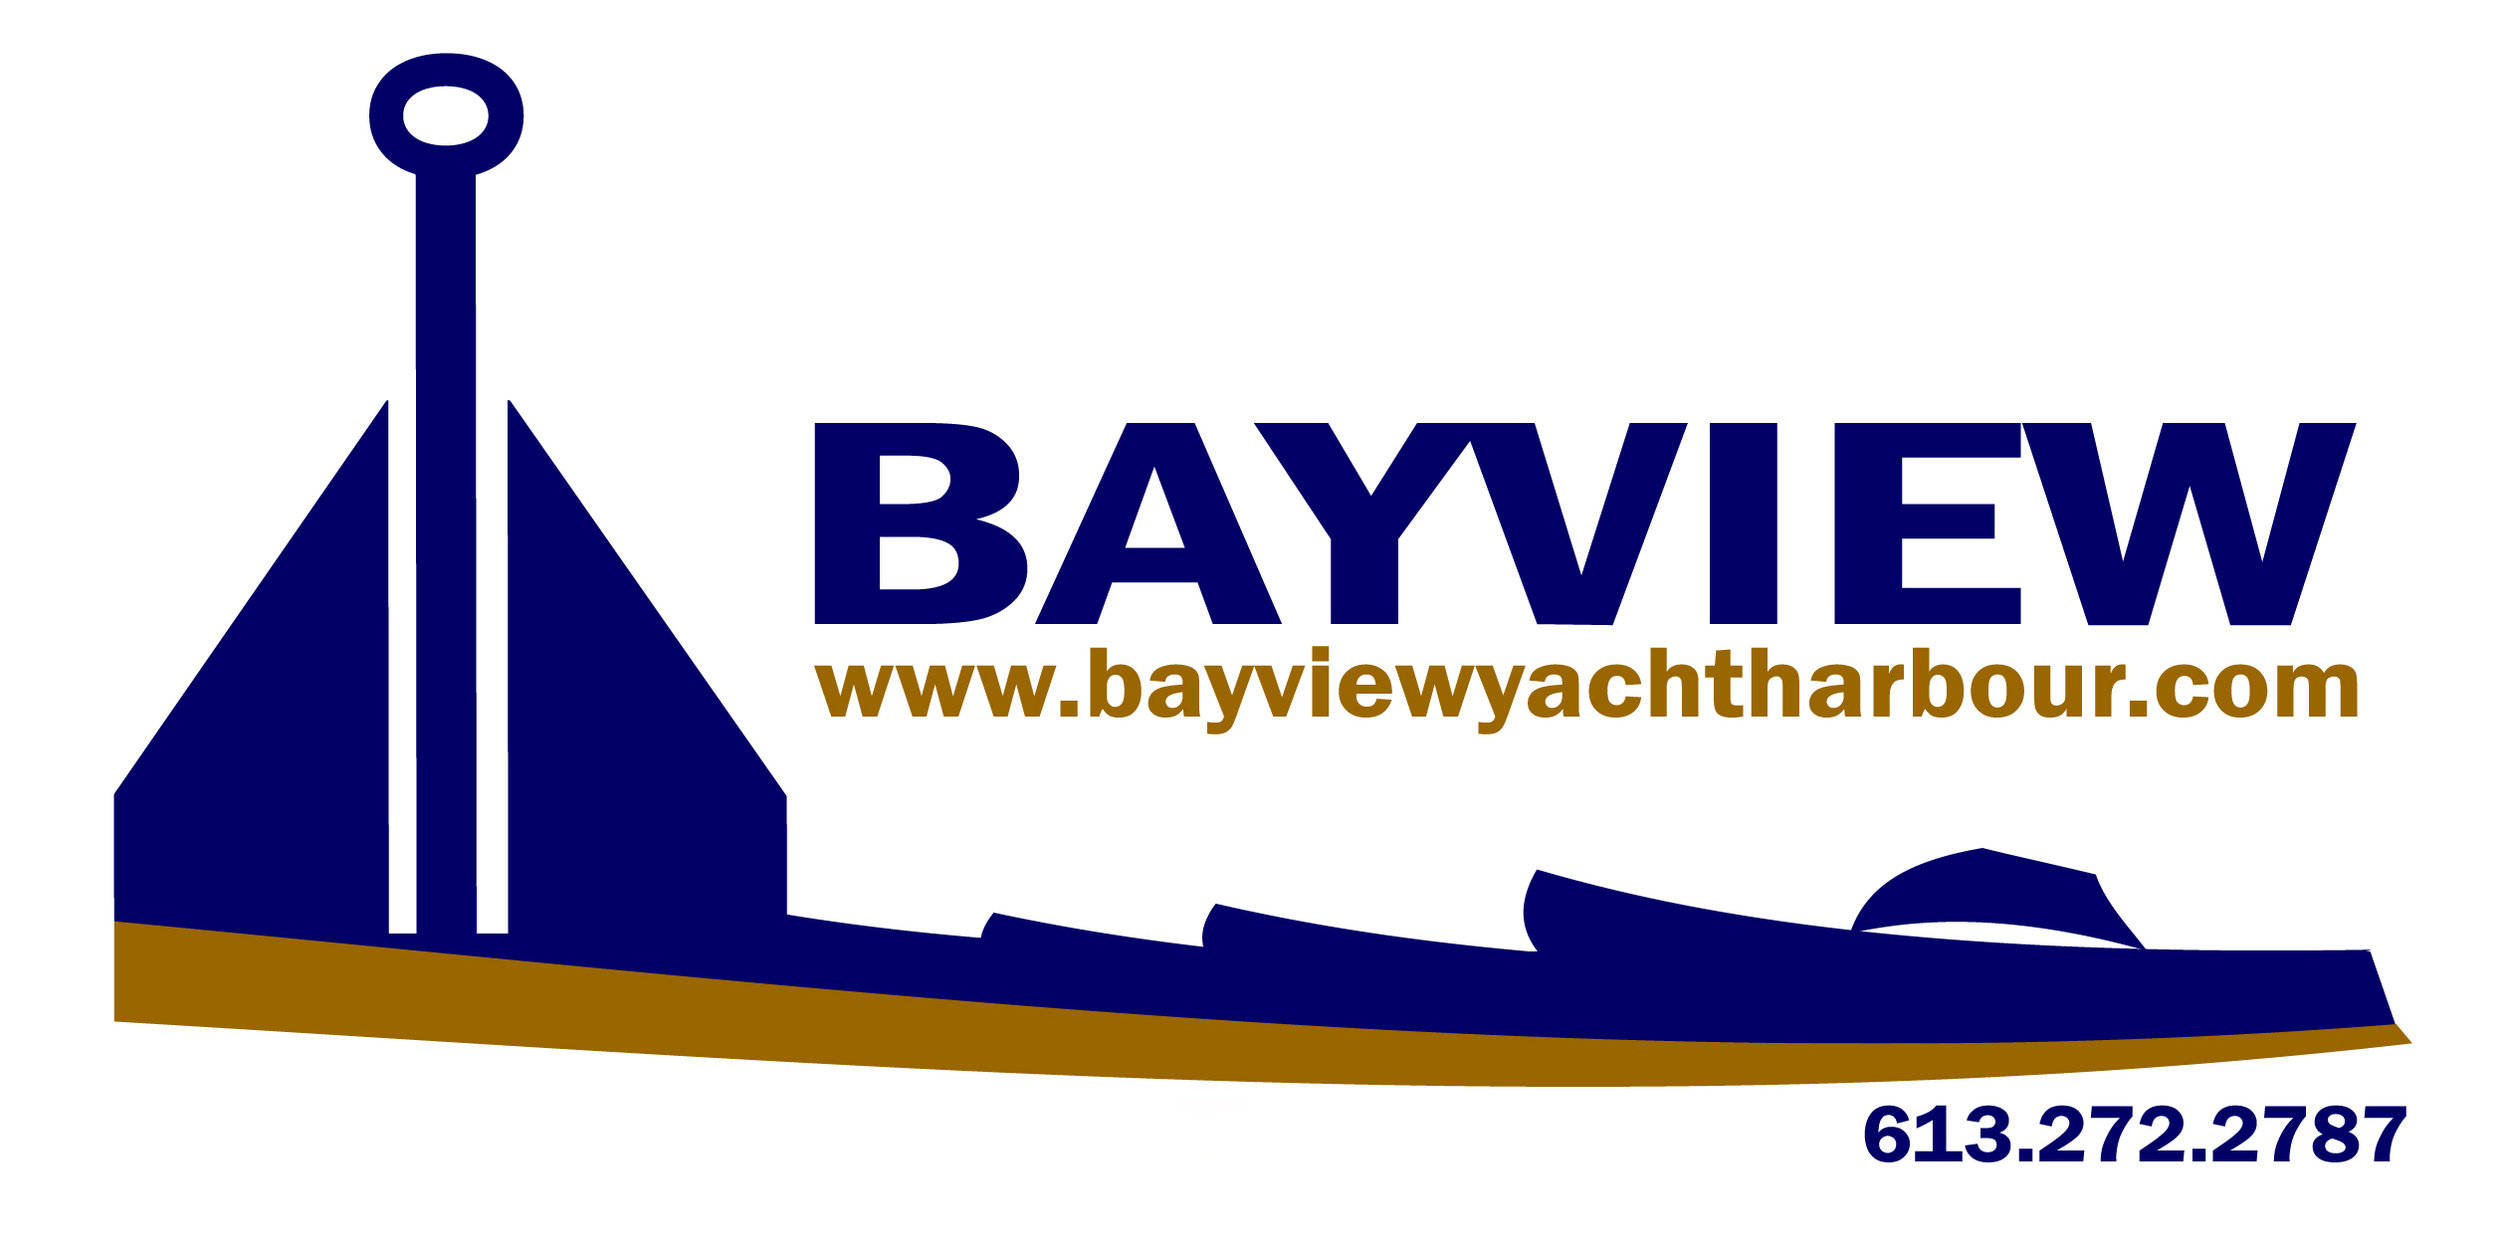 Bayview with phone number.jpg